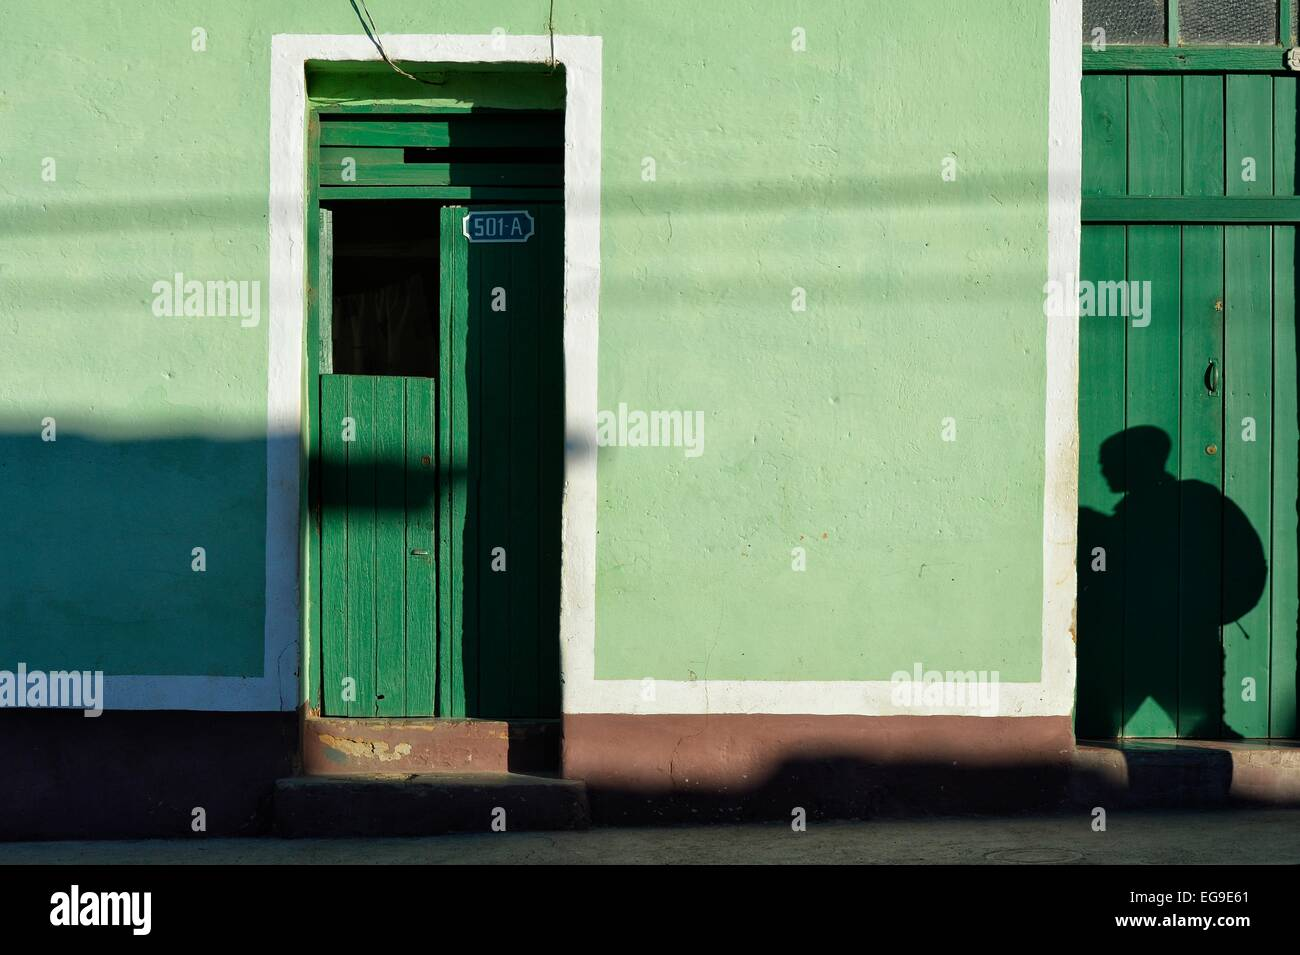 A shadowy figure seen a bright green painted wall in Trinidad, Cuba - Stock Image